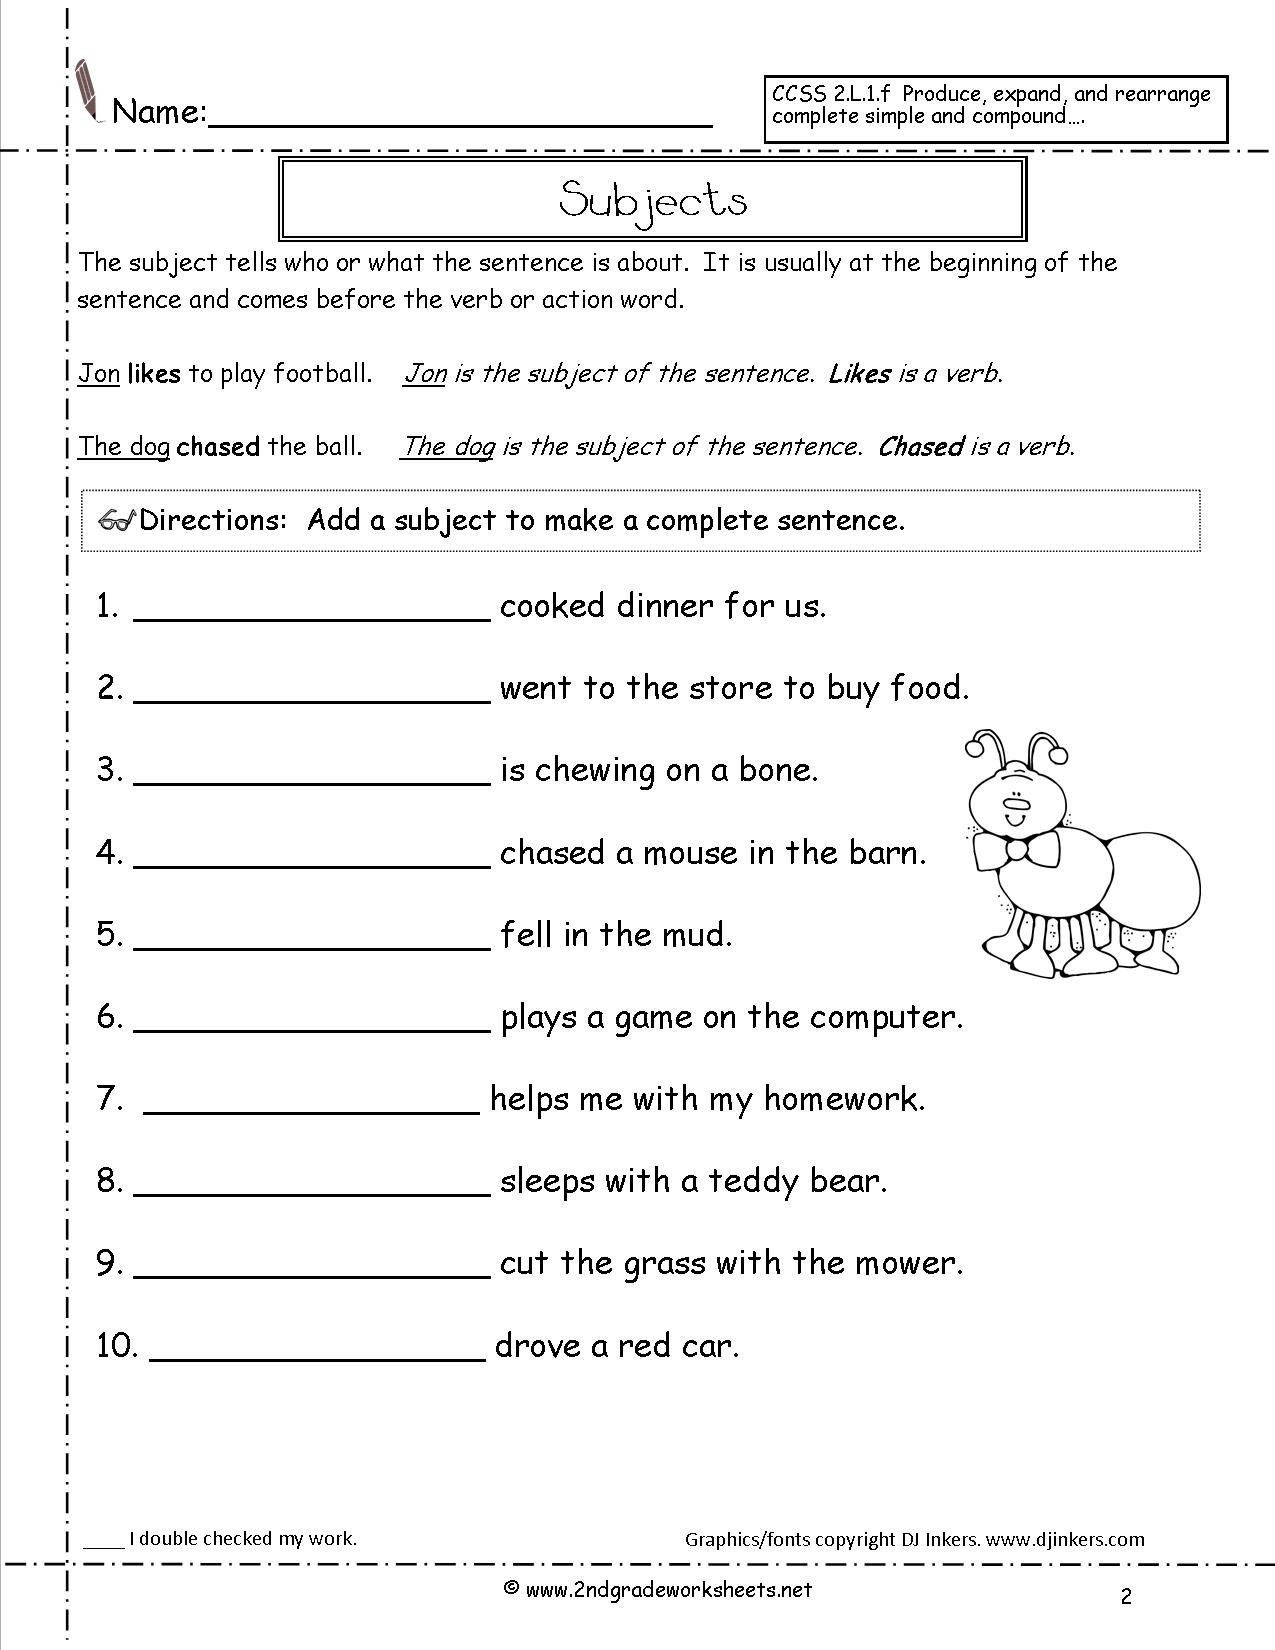 Cursive Sentences Worksheets Printable Basic Math Words Printable Cursive Worksheets 3rd Grade